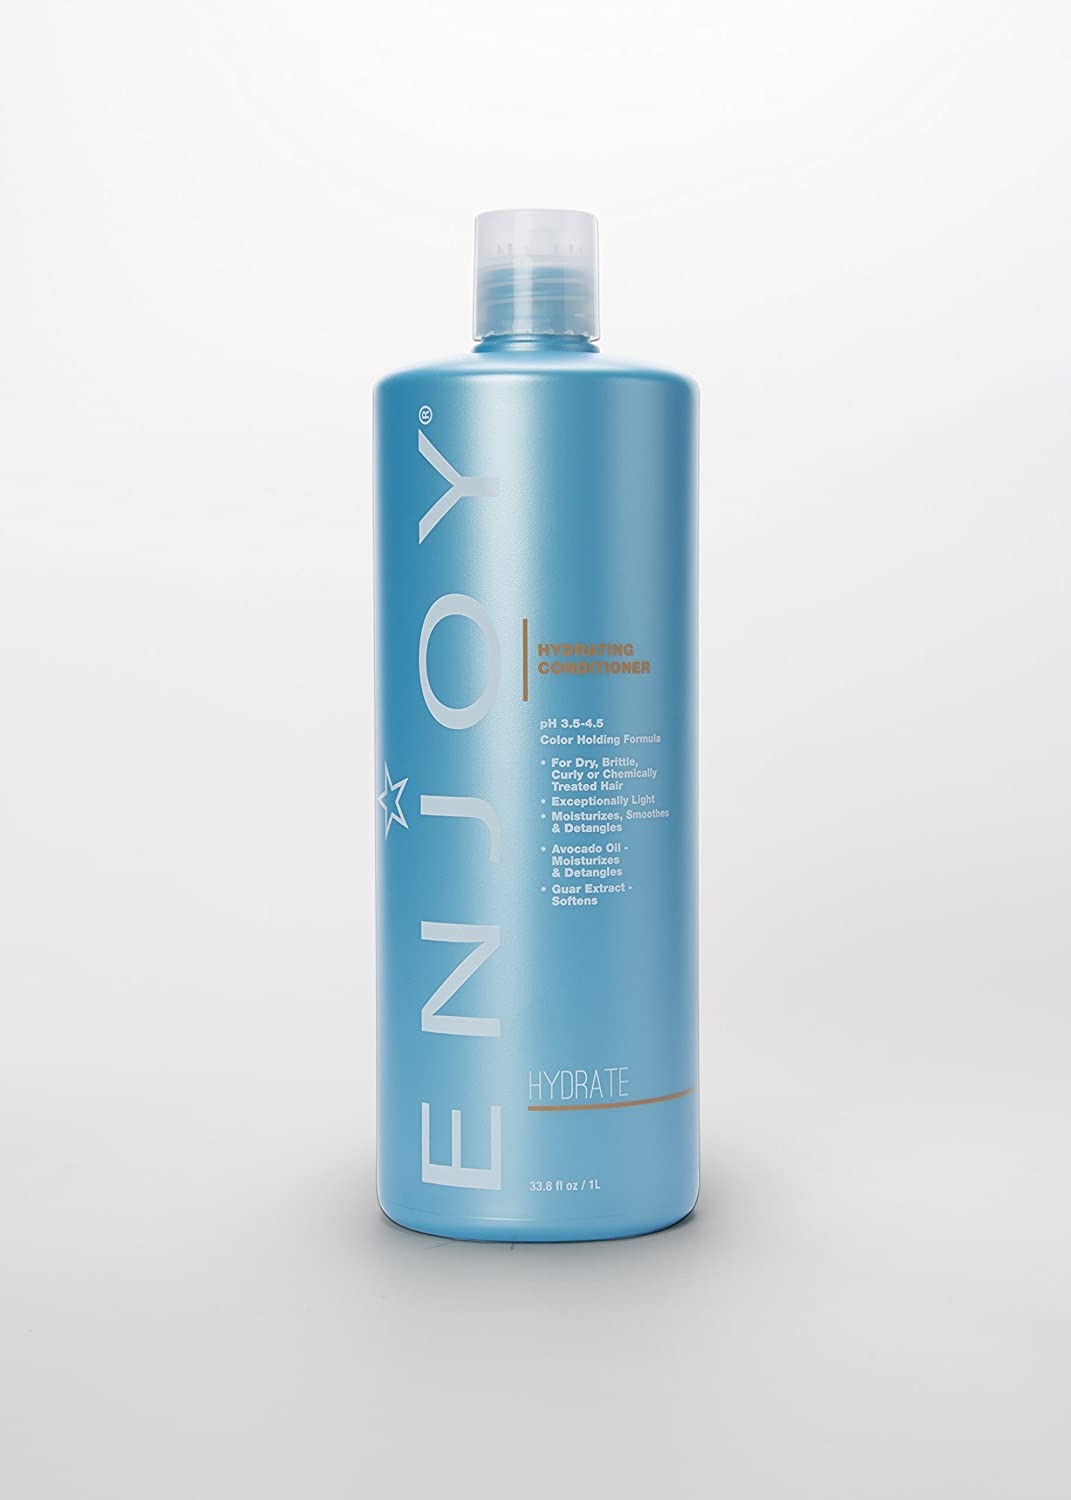 ENJOY Sulfate Free Hydrating Conditioner (33.8 OZ) – Smooth, Soft, Silky Hair Conditioner